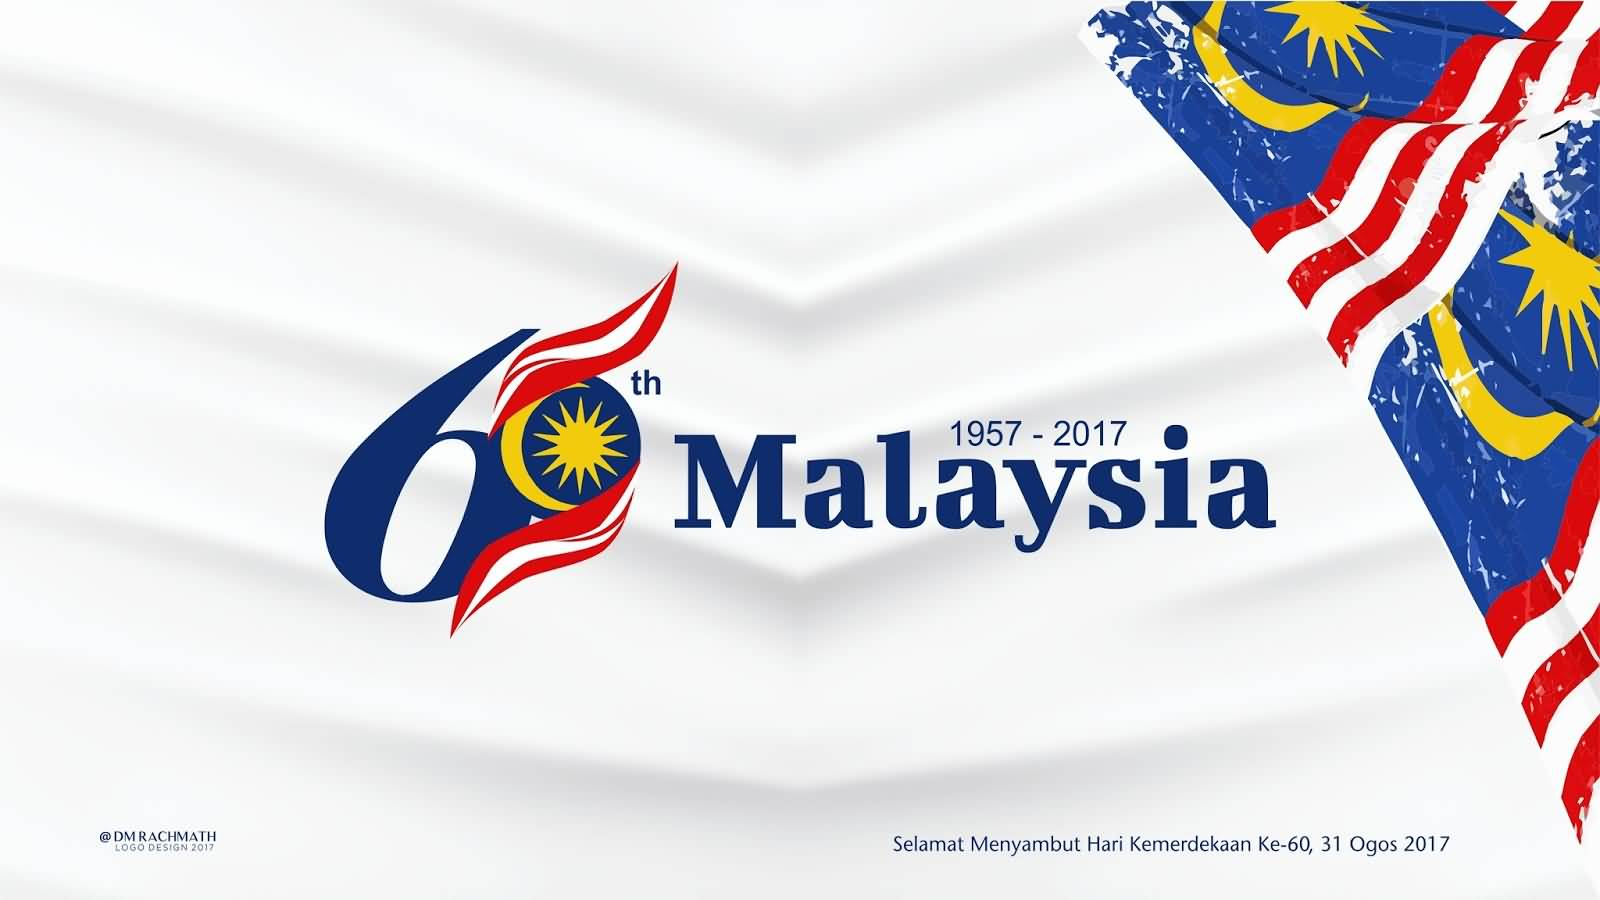 independence day of malaysia Mohd rasfan—afp/getty images by rishi iyengar august 31, 2016 malaysia narrowly thwarted terrorist attacks shortly before the country marked its 59th independence day, police said on wednesday, thanks to the detention of three individuals believed to be affiliated with the islamic state (isis.